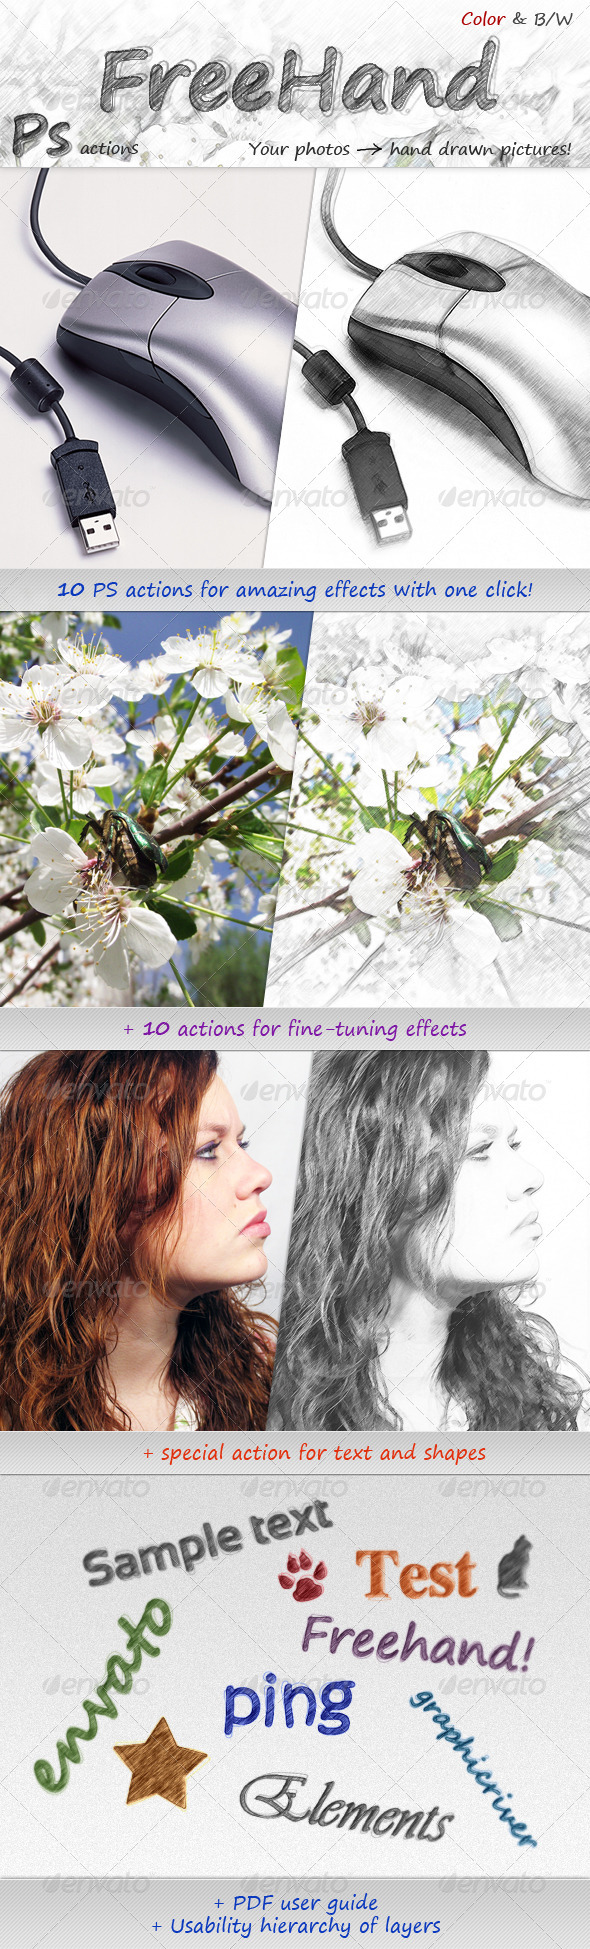 FreeHand - Hand drawn effects - Photo Effects Actions